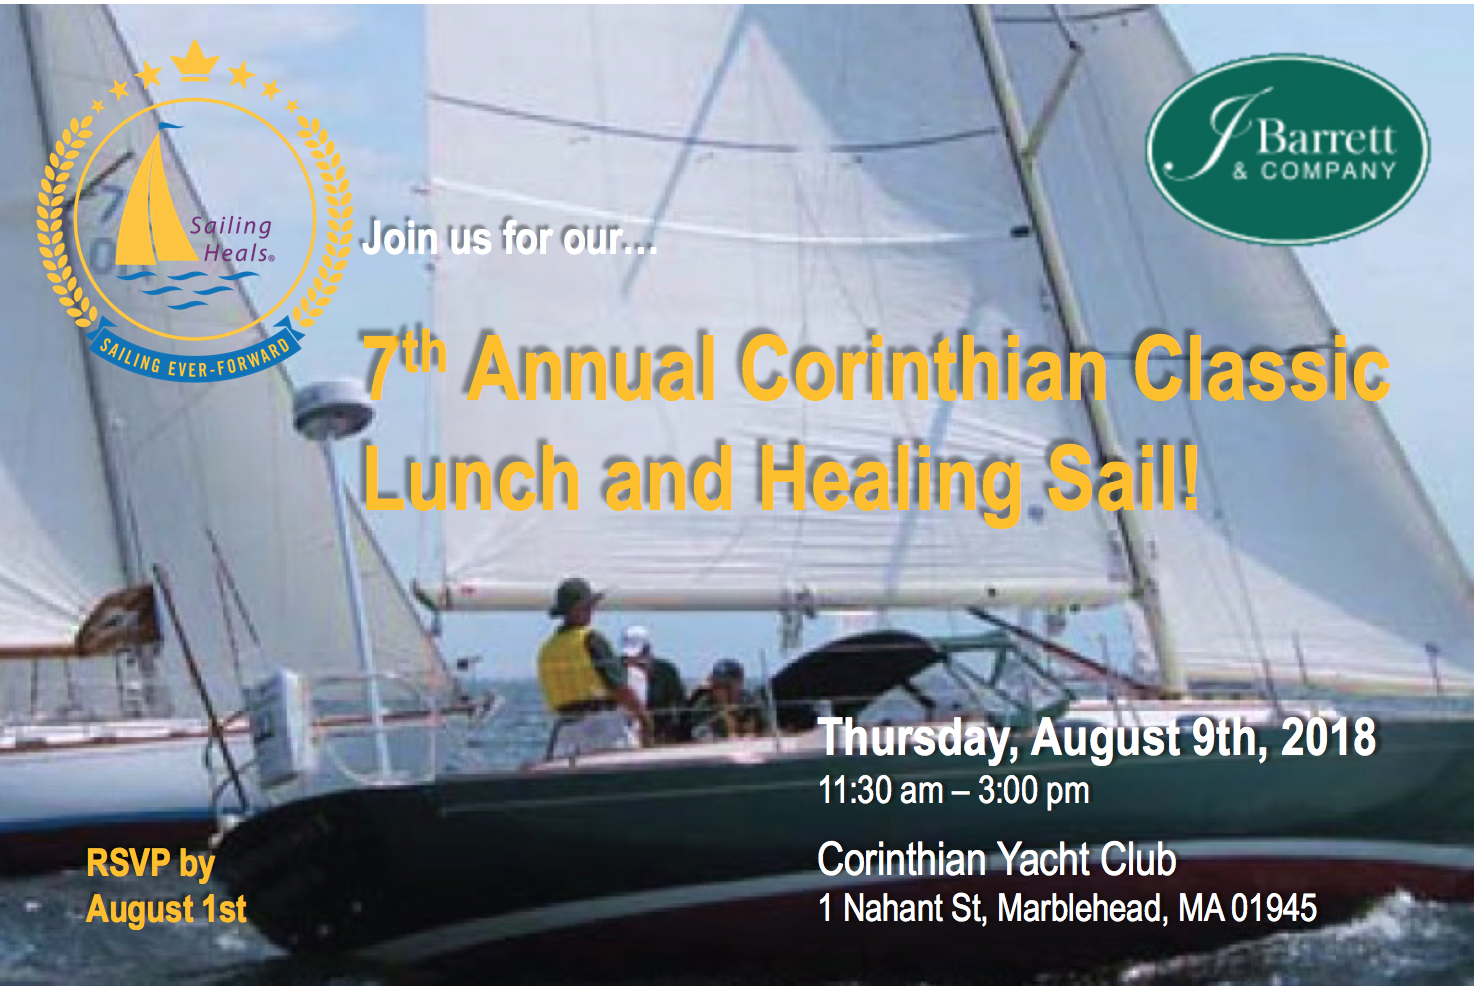 8/9/2018 Corinthian Classic Lunch and Healing Sail